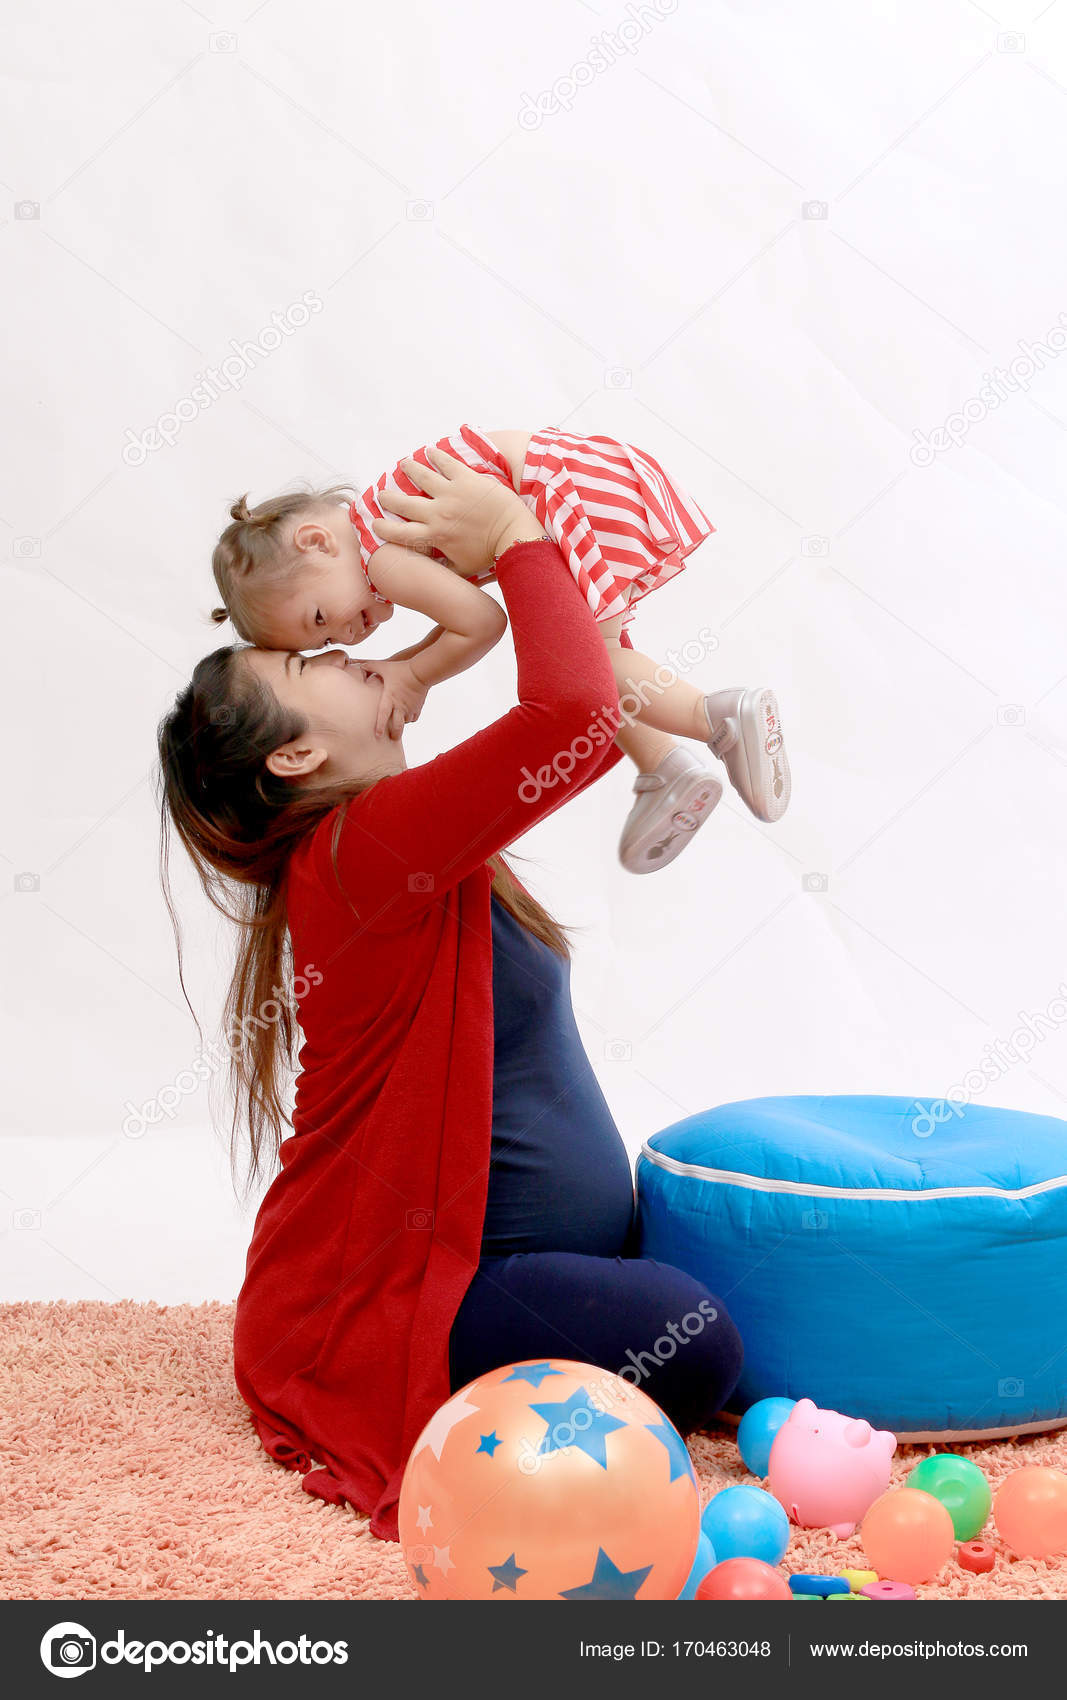 e84690808 Happy young pregnant mother with red knitting sweater playing with ...